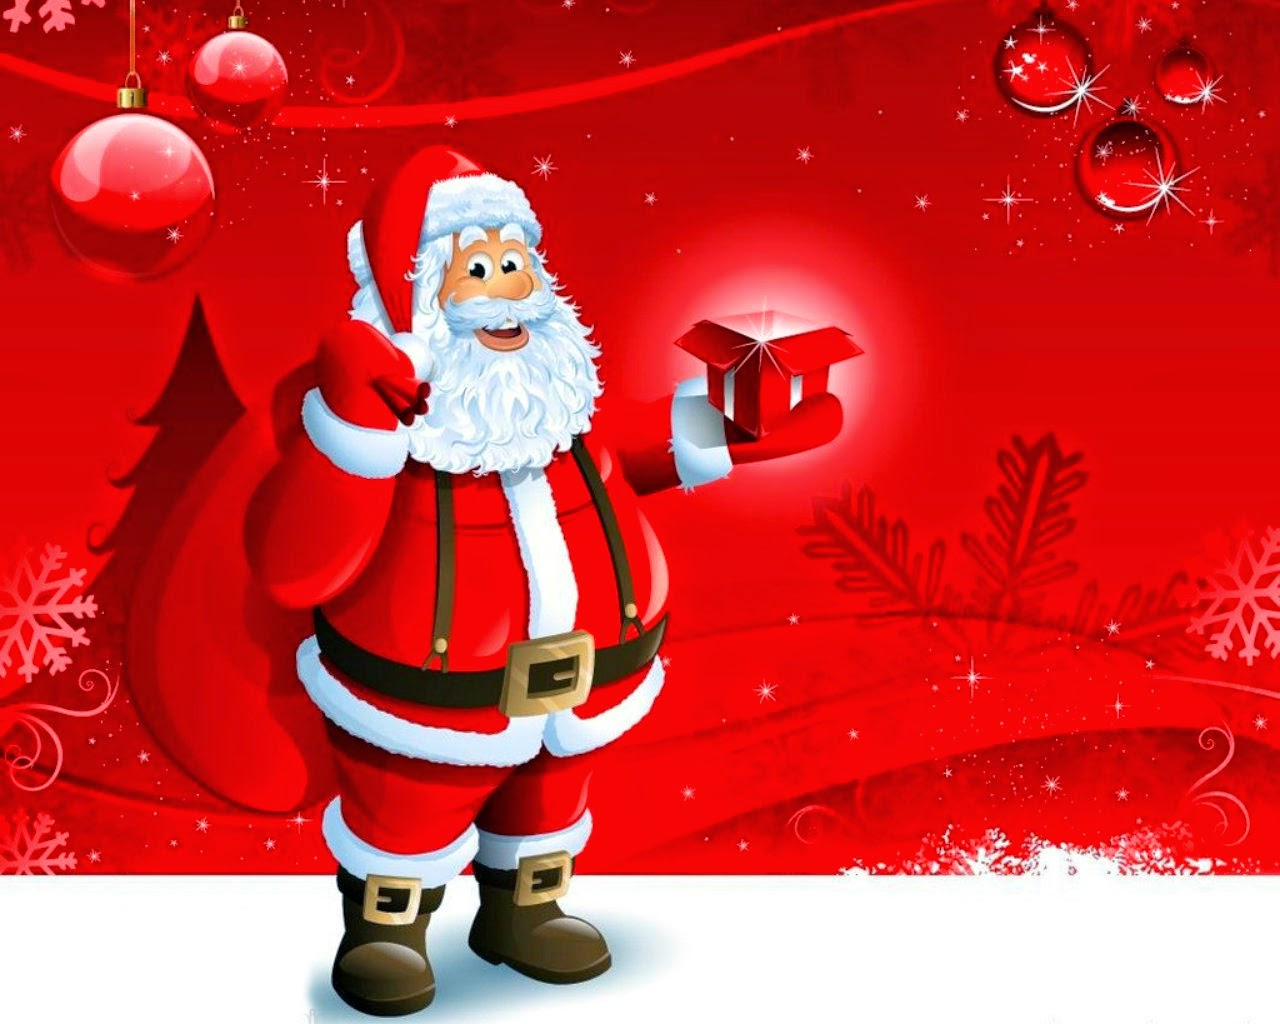 Christmas-cartoon-images-Santa-with-gift-box-picture-1280x1024.jpg